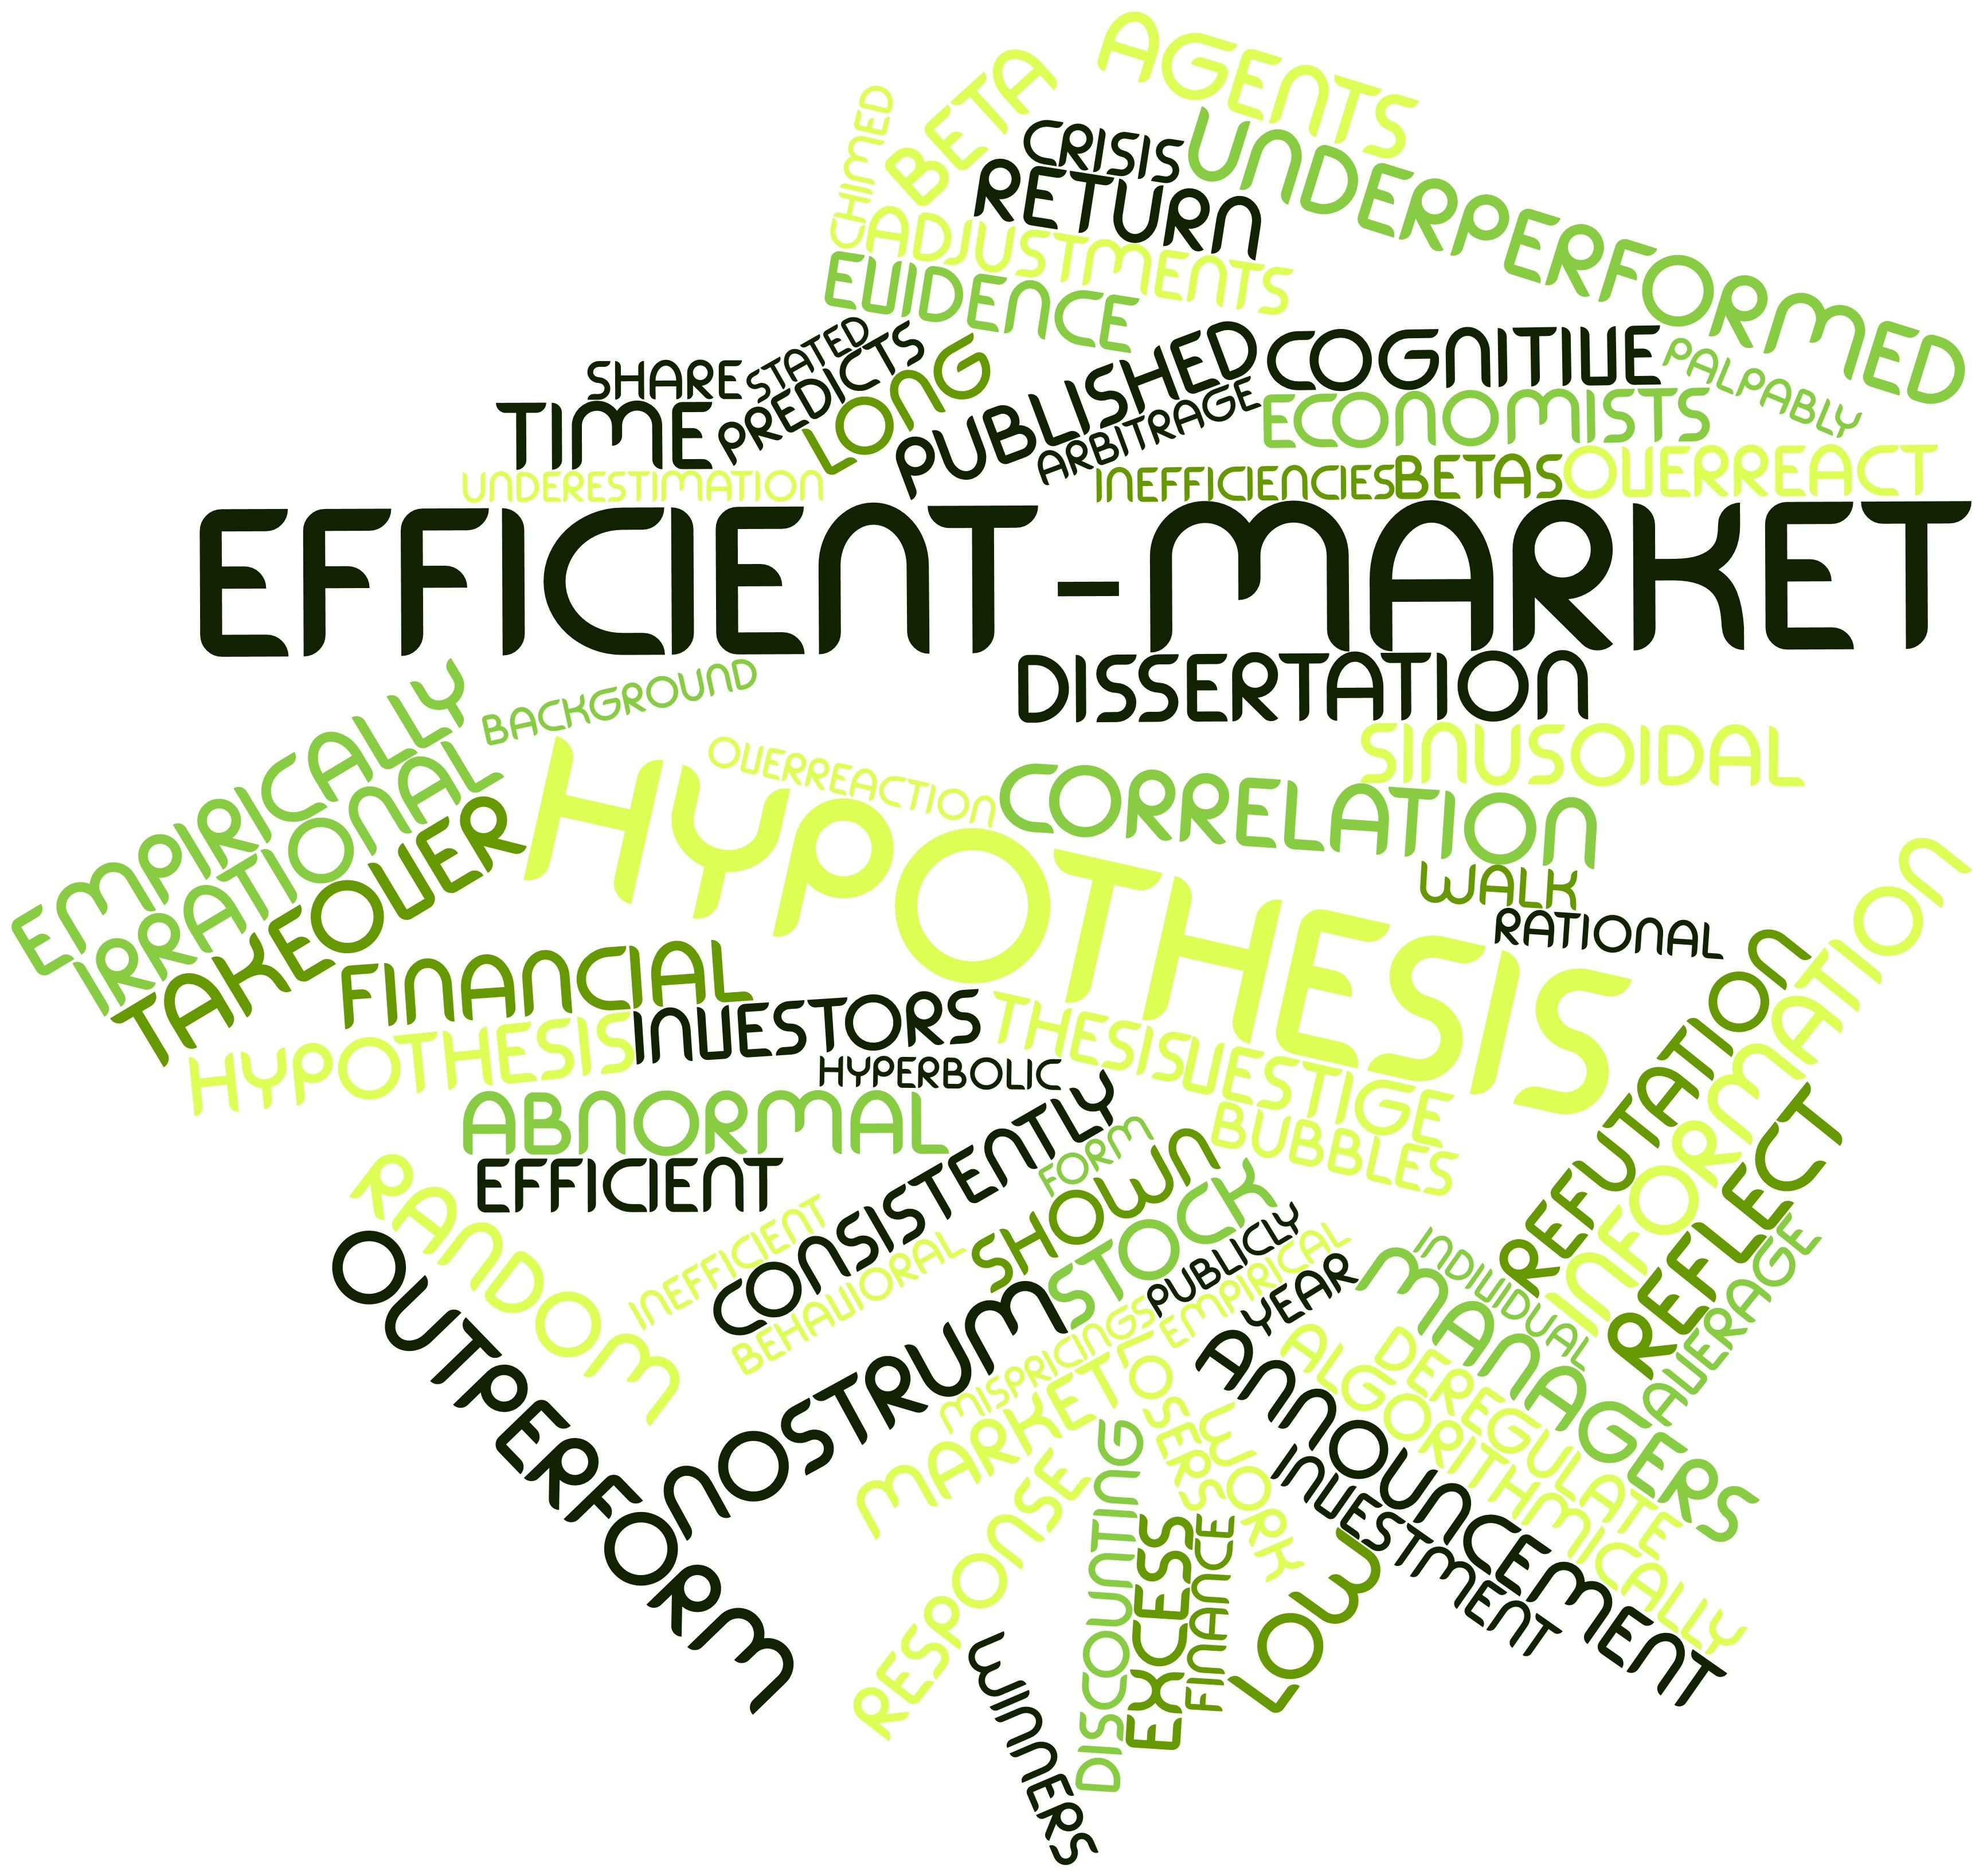 from the efficient market hypothesis to The efficient market hypothesis (and it has always been just a hypothesis) is highly controversial, especially after the stockmarket runup in the late 1990s there is a significant amount of research that shows that markets vary in their efficiency, and that this depends on market structure and organization.